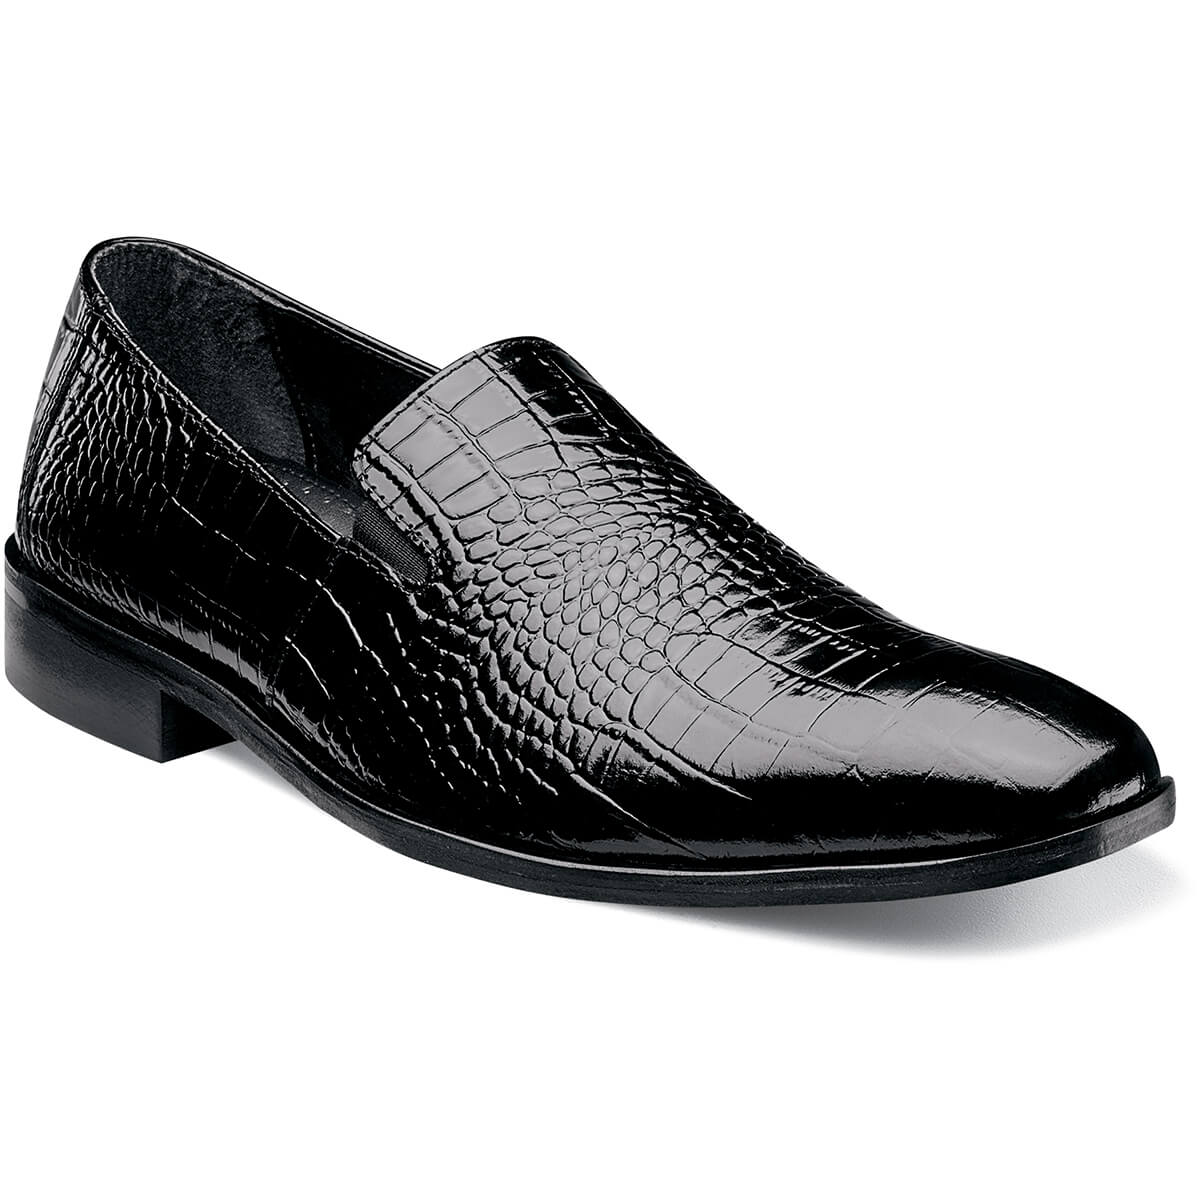 Galindo Plain Toe Slip On